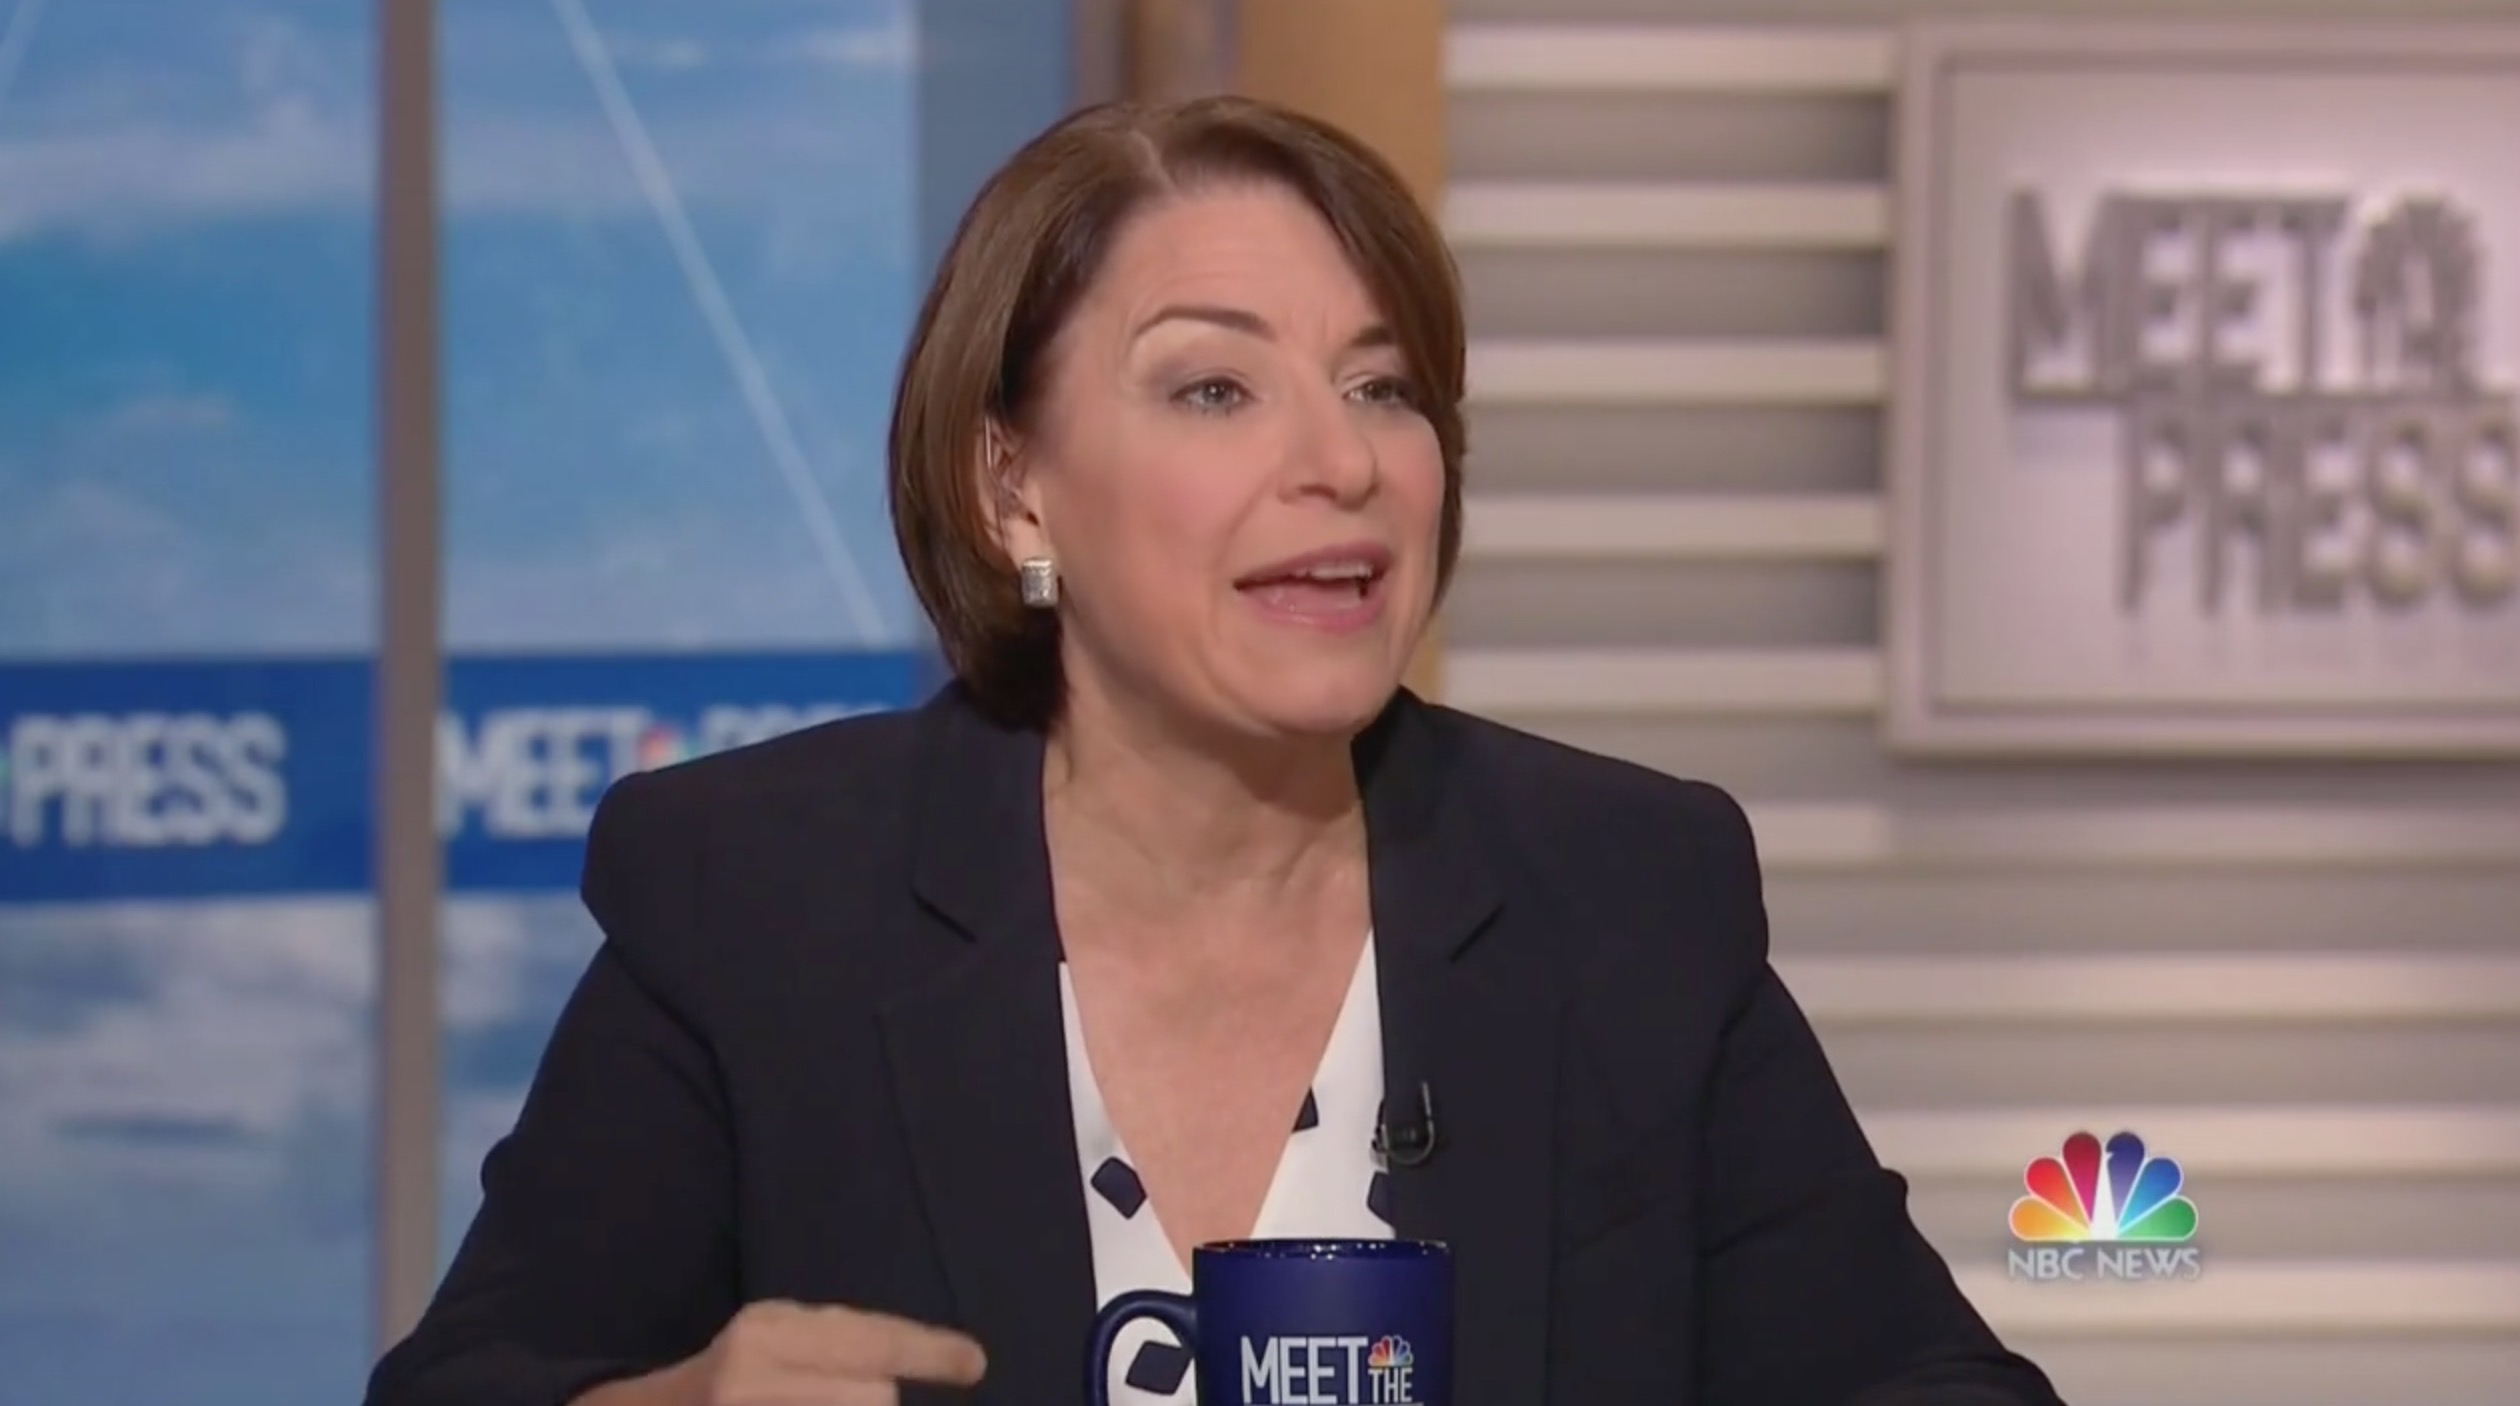 Amy Klobuchar Slams Trump's Proposed Taliban Meeting: You Don't Treat Negotiating With Terrorists Like a 'Game Show'